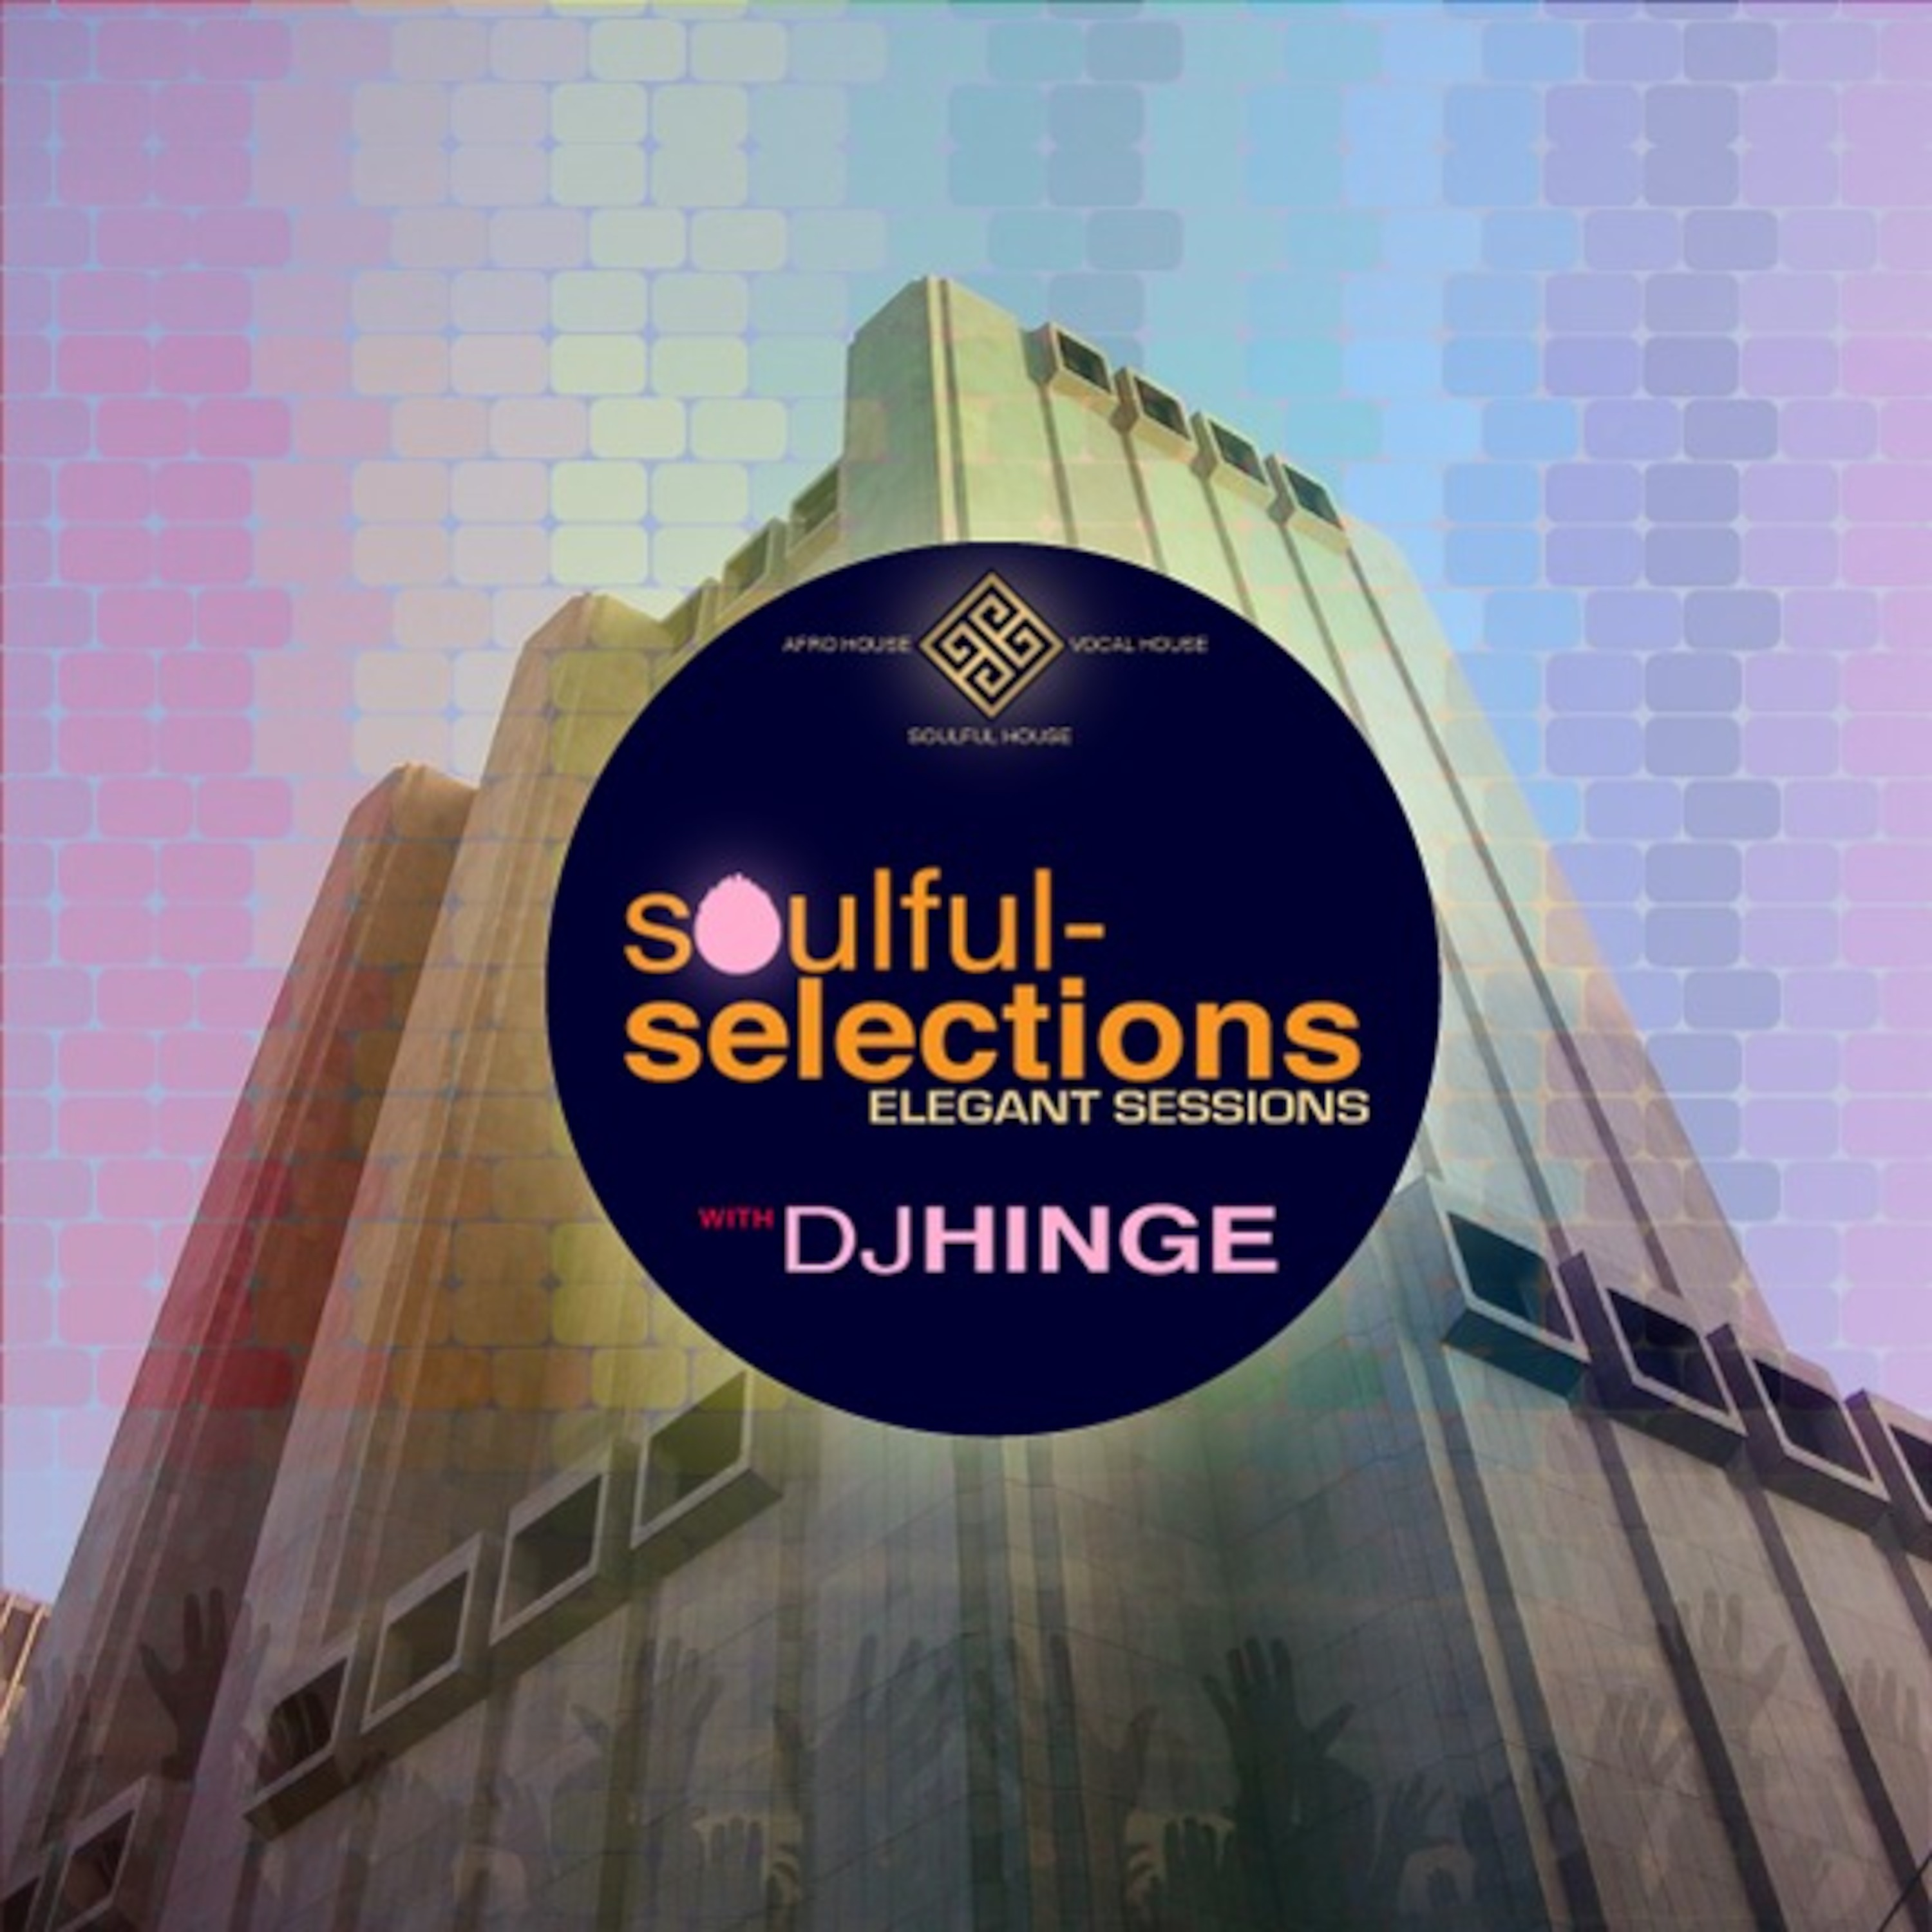 Episode 15: Soulful-Selections Elegant Session for 18 January 2021